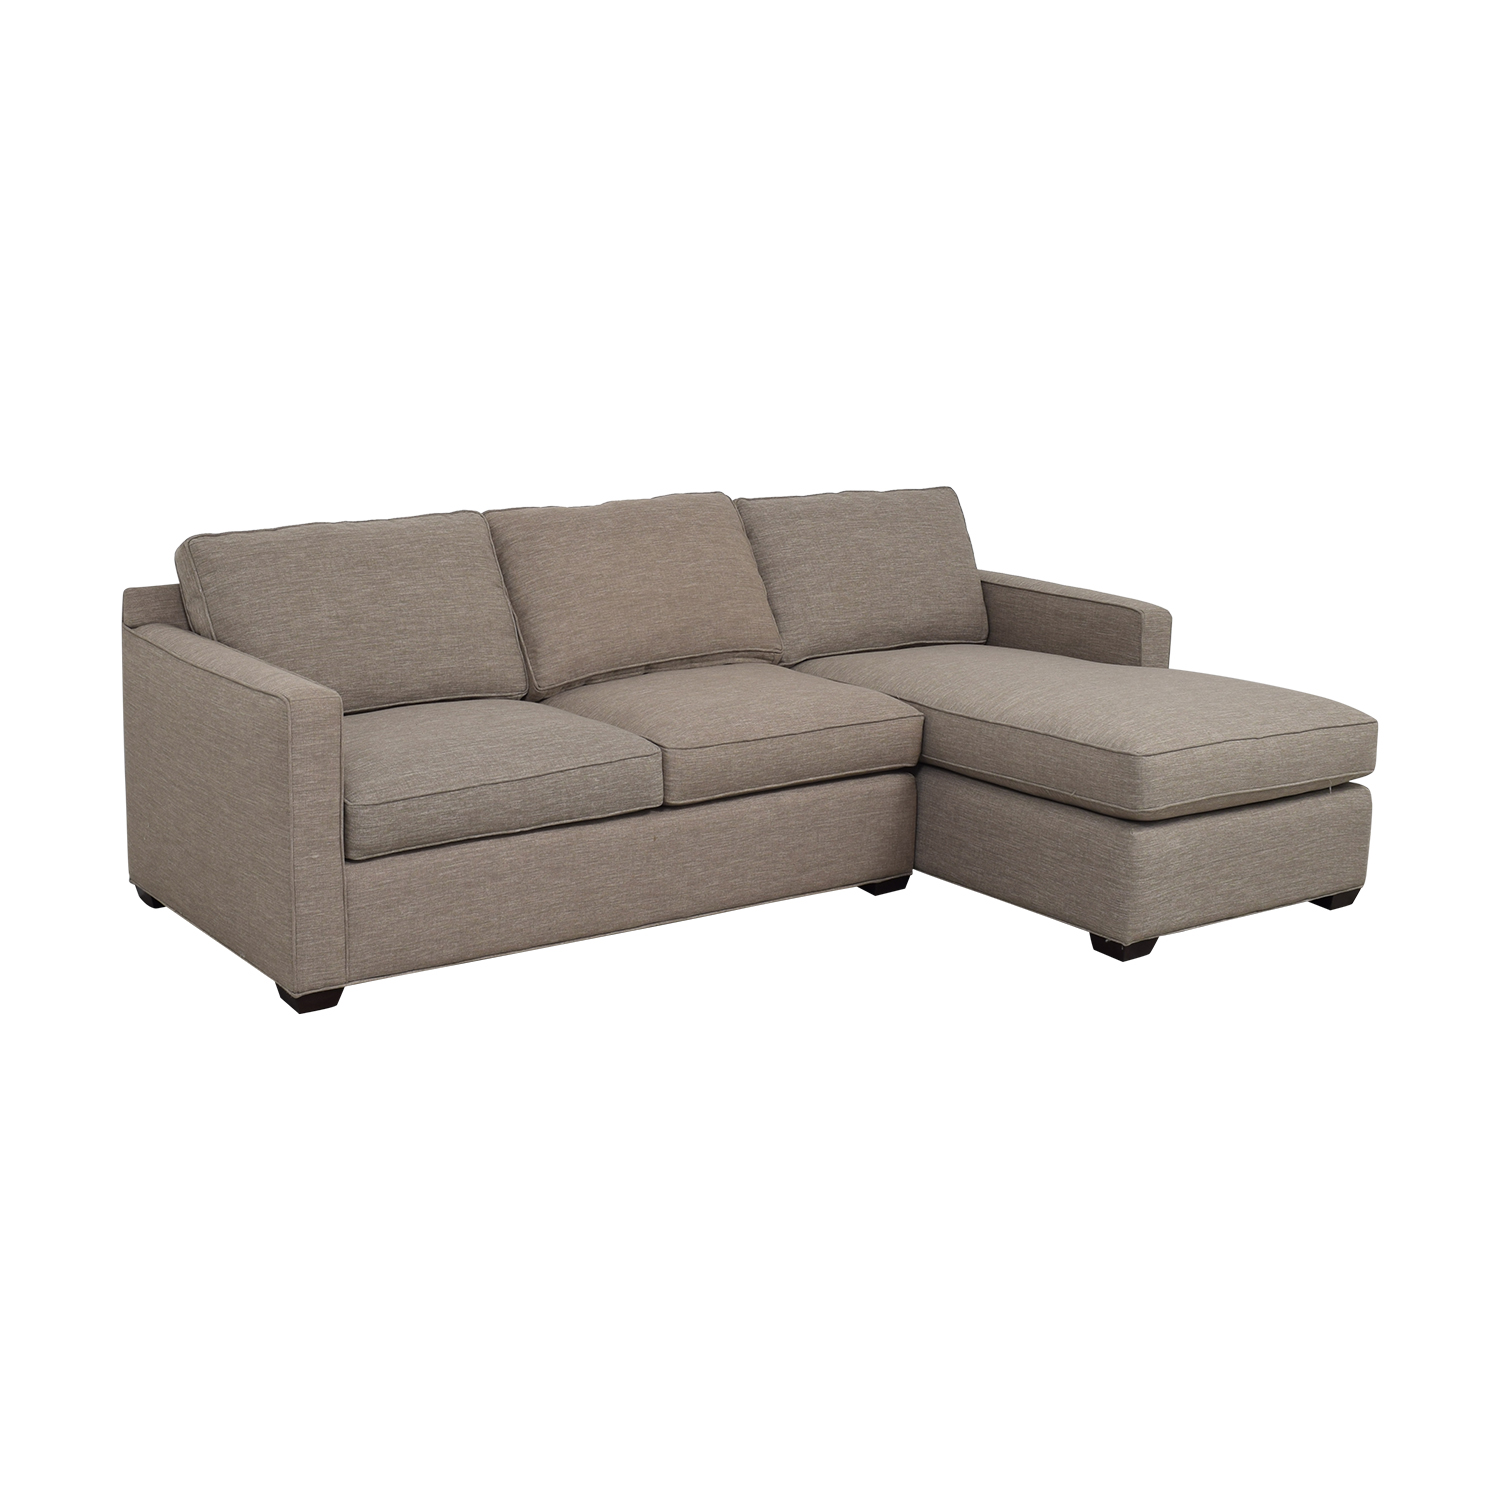 Crate & Barrel Crate & Barrel Grey Chaise Sectional coupon